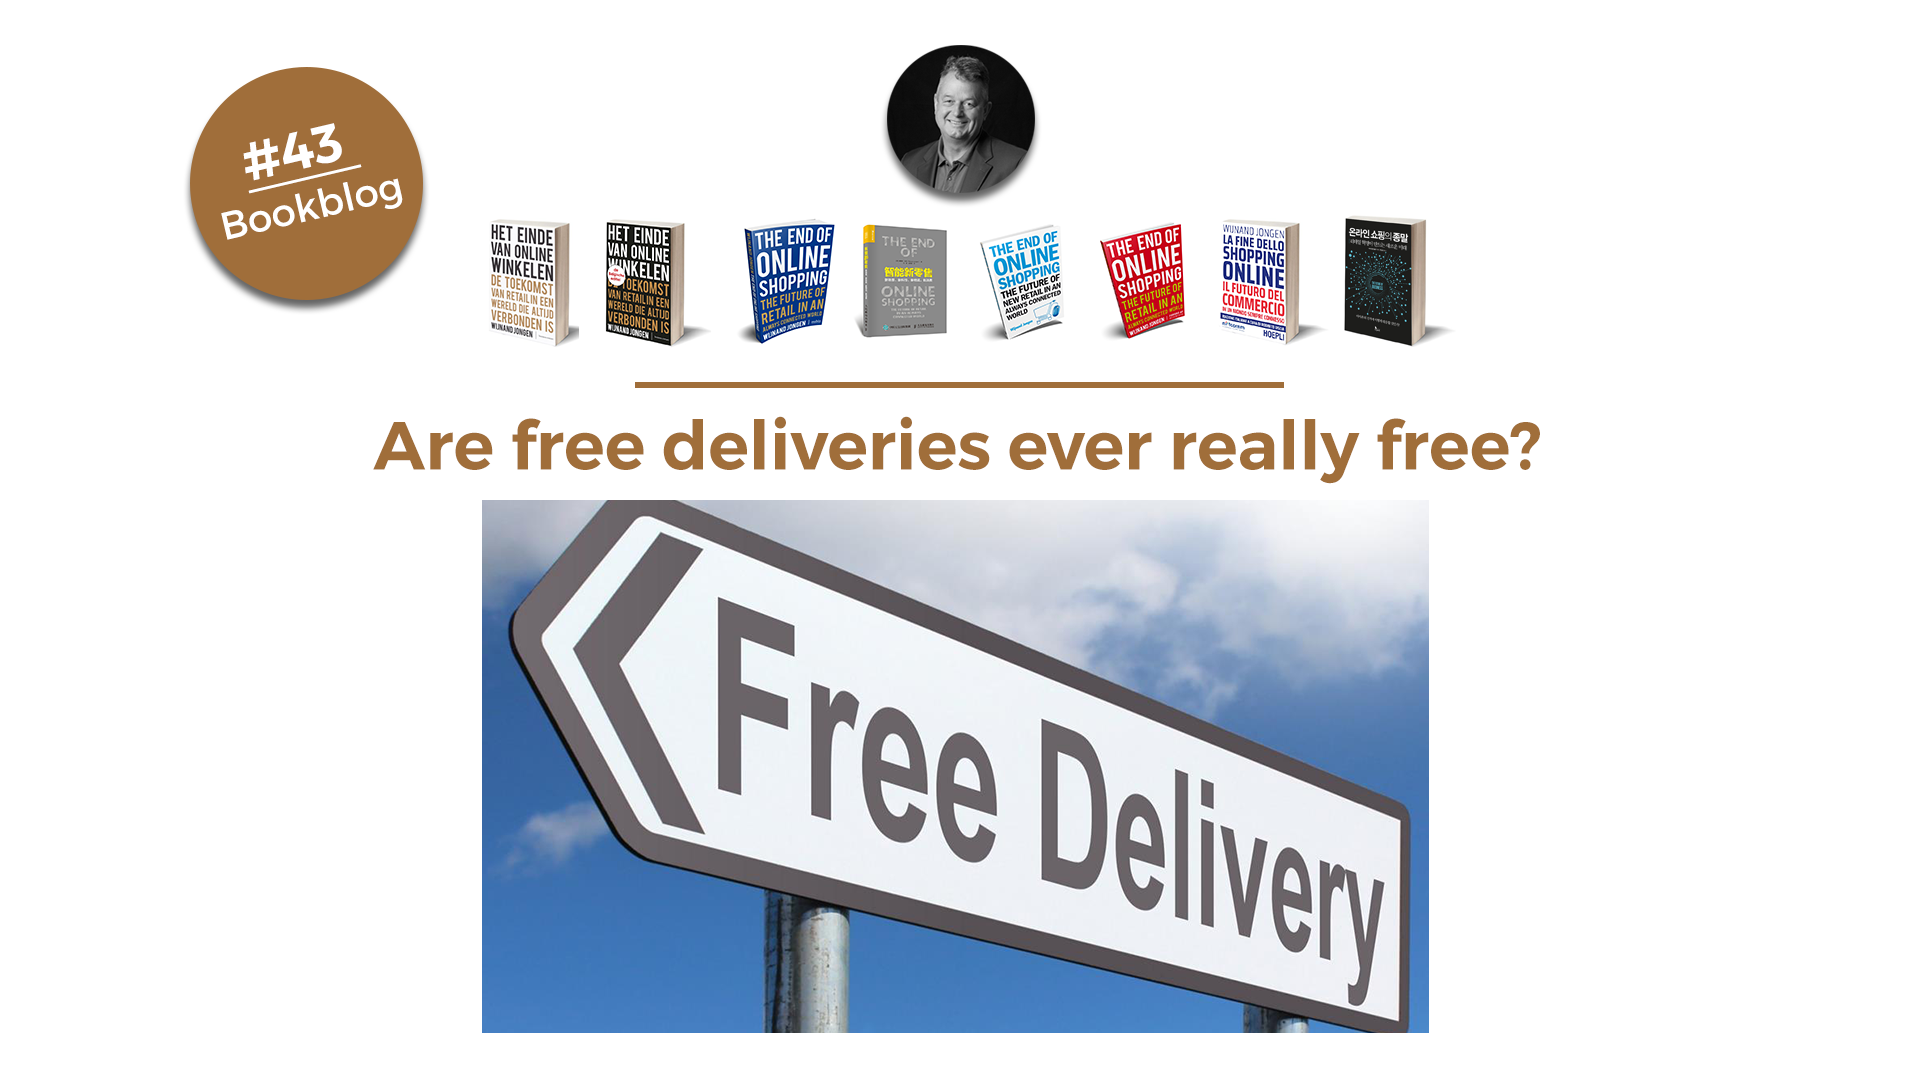 Are free deliveries ever really free?